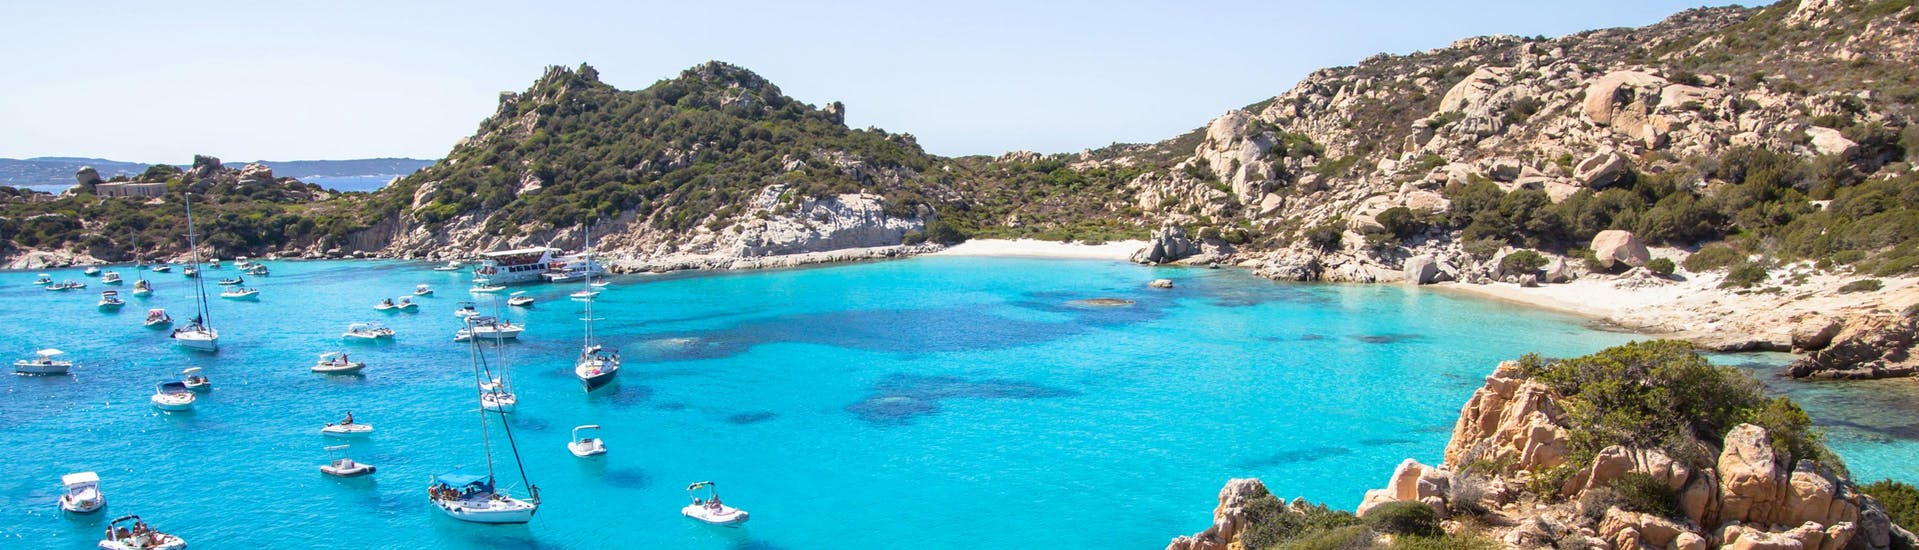 An image of Cala Corsara on the archipelago of La Maddalena, one of the many places you can visit on a boat tour in Sardinia.